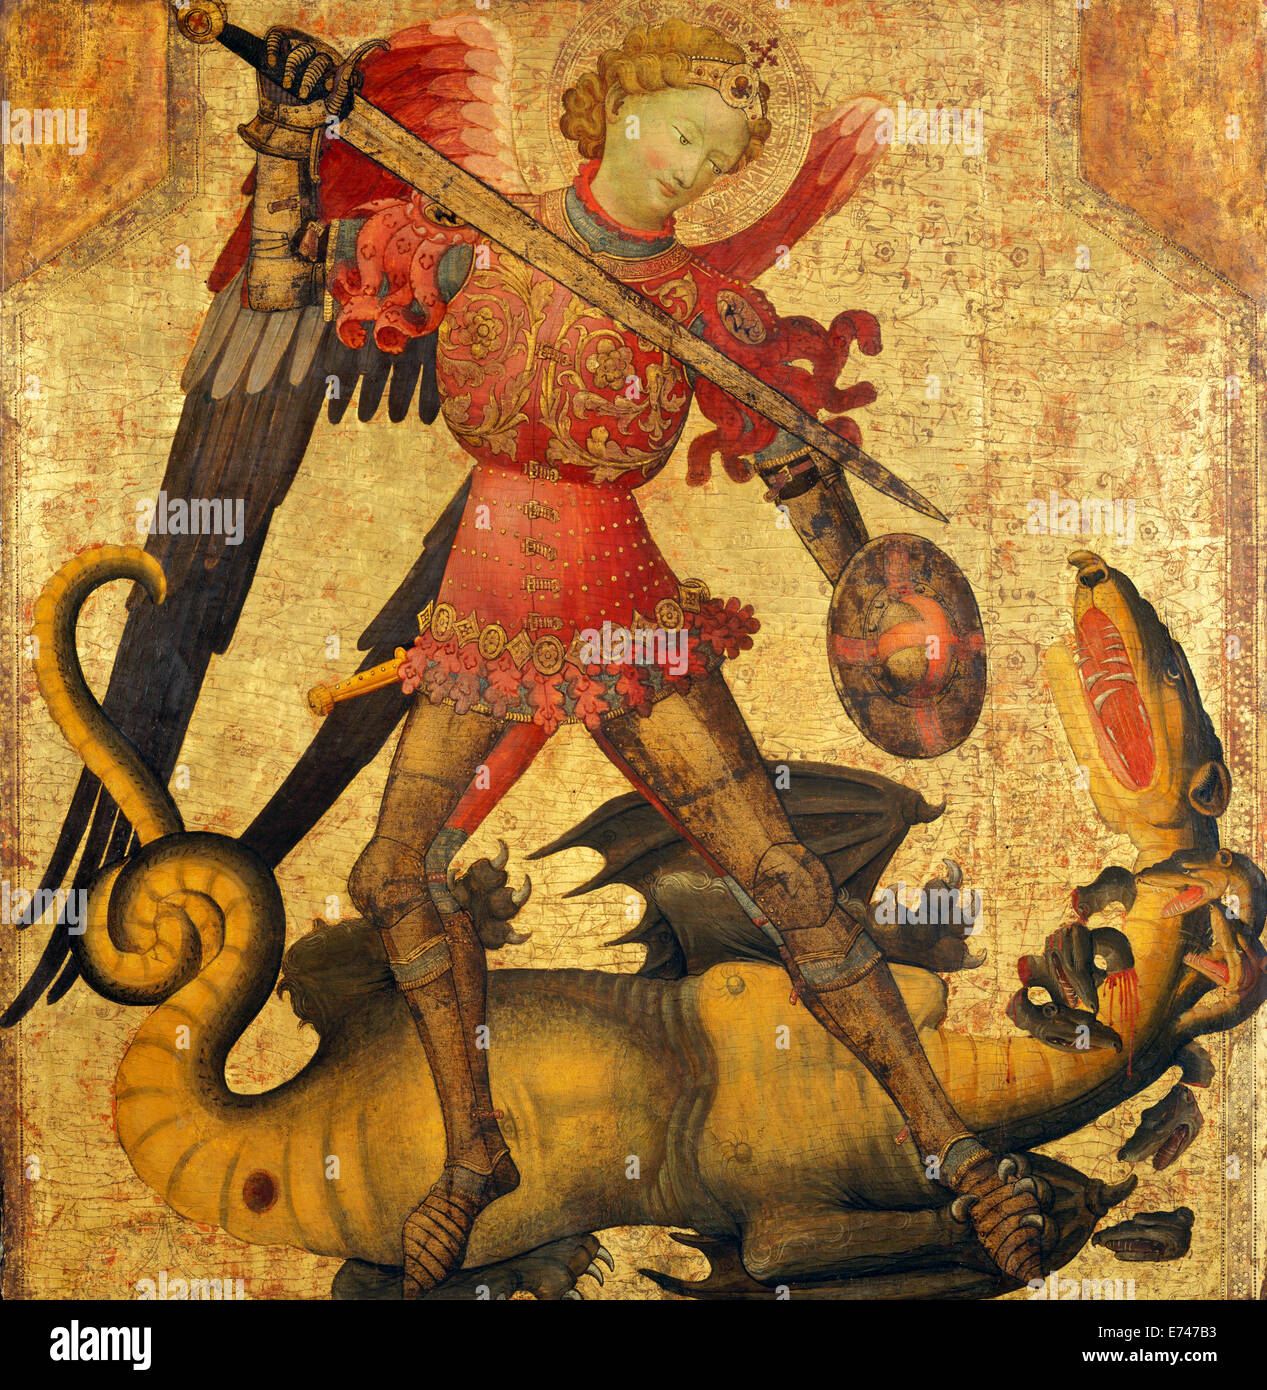 St. Michael and the Dragon - by Unknown Spanish artist, 1405 Stock Photo